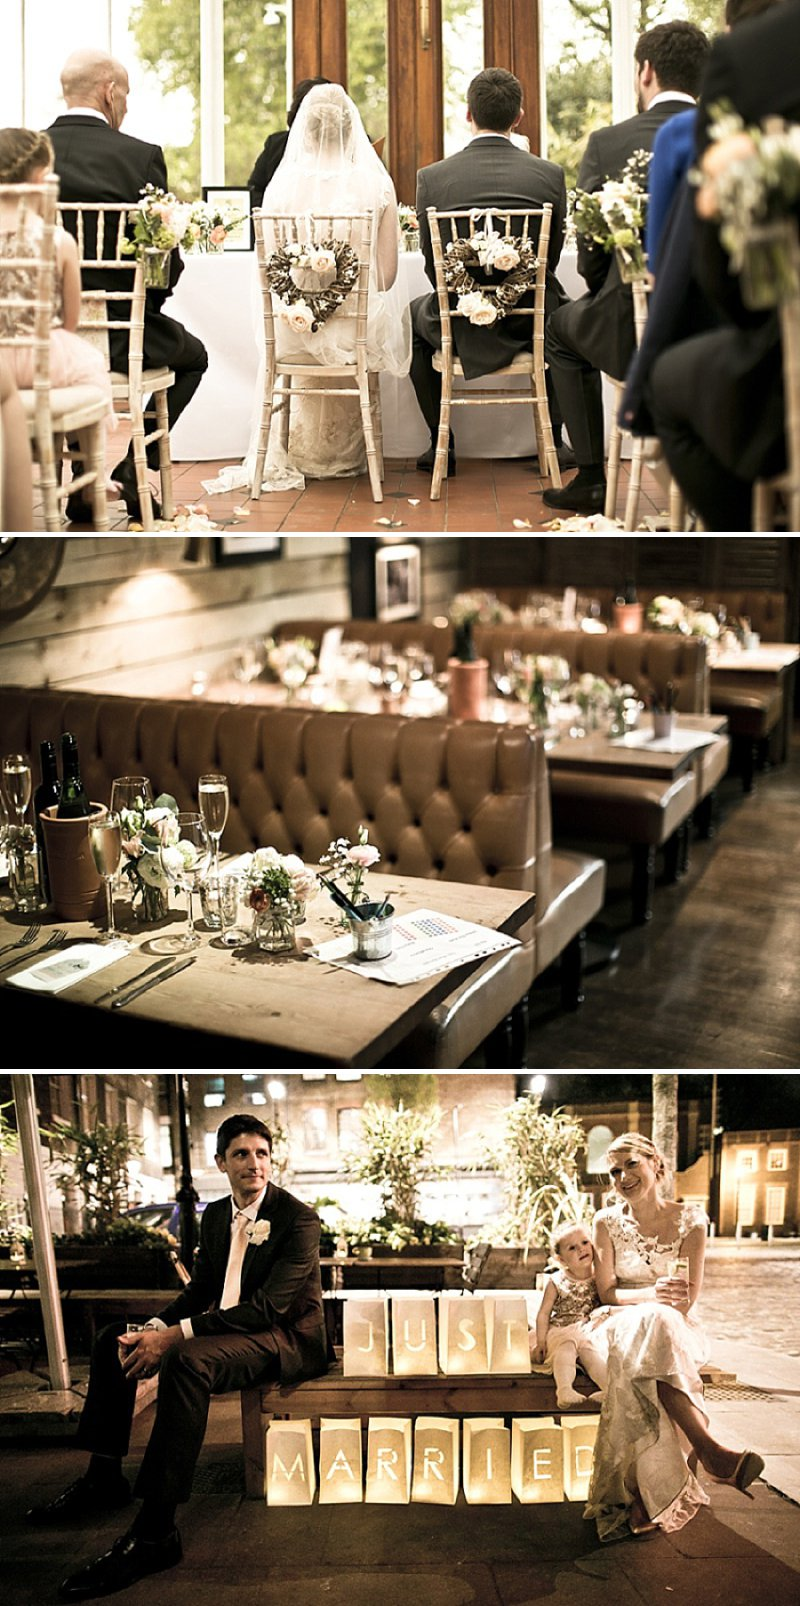 Laid Back London Wedding At The Horniman Museum With A Peach And Rose Gold Colour Scheme With Bride In Adagio By Claire Pettibone With Bridesmaids In Nude Dresses From Miss Selfridge 1 Peach And Rose Gold For A Laid Back London Wedding.